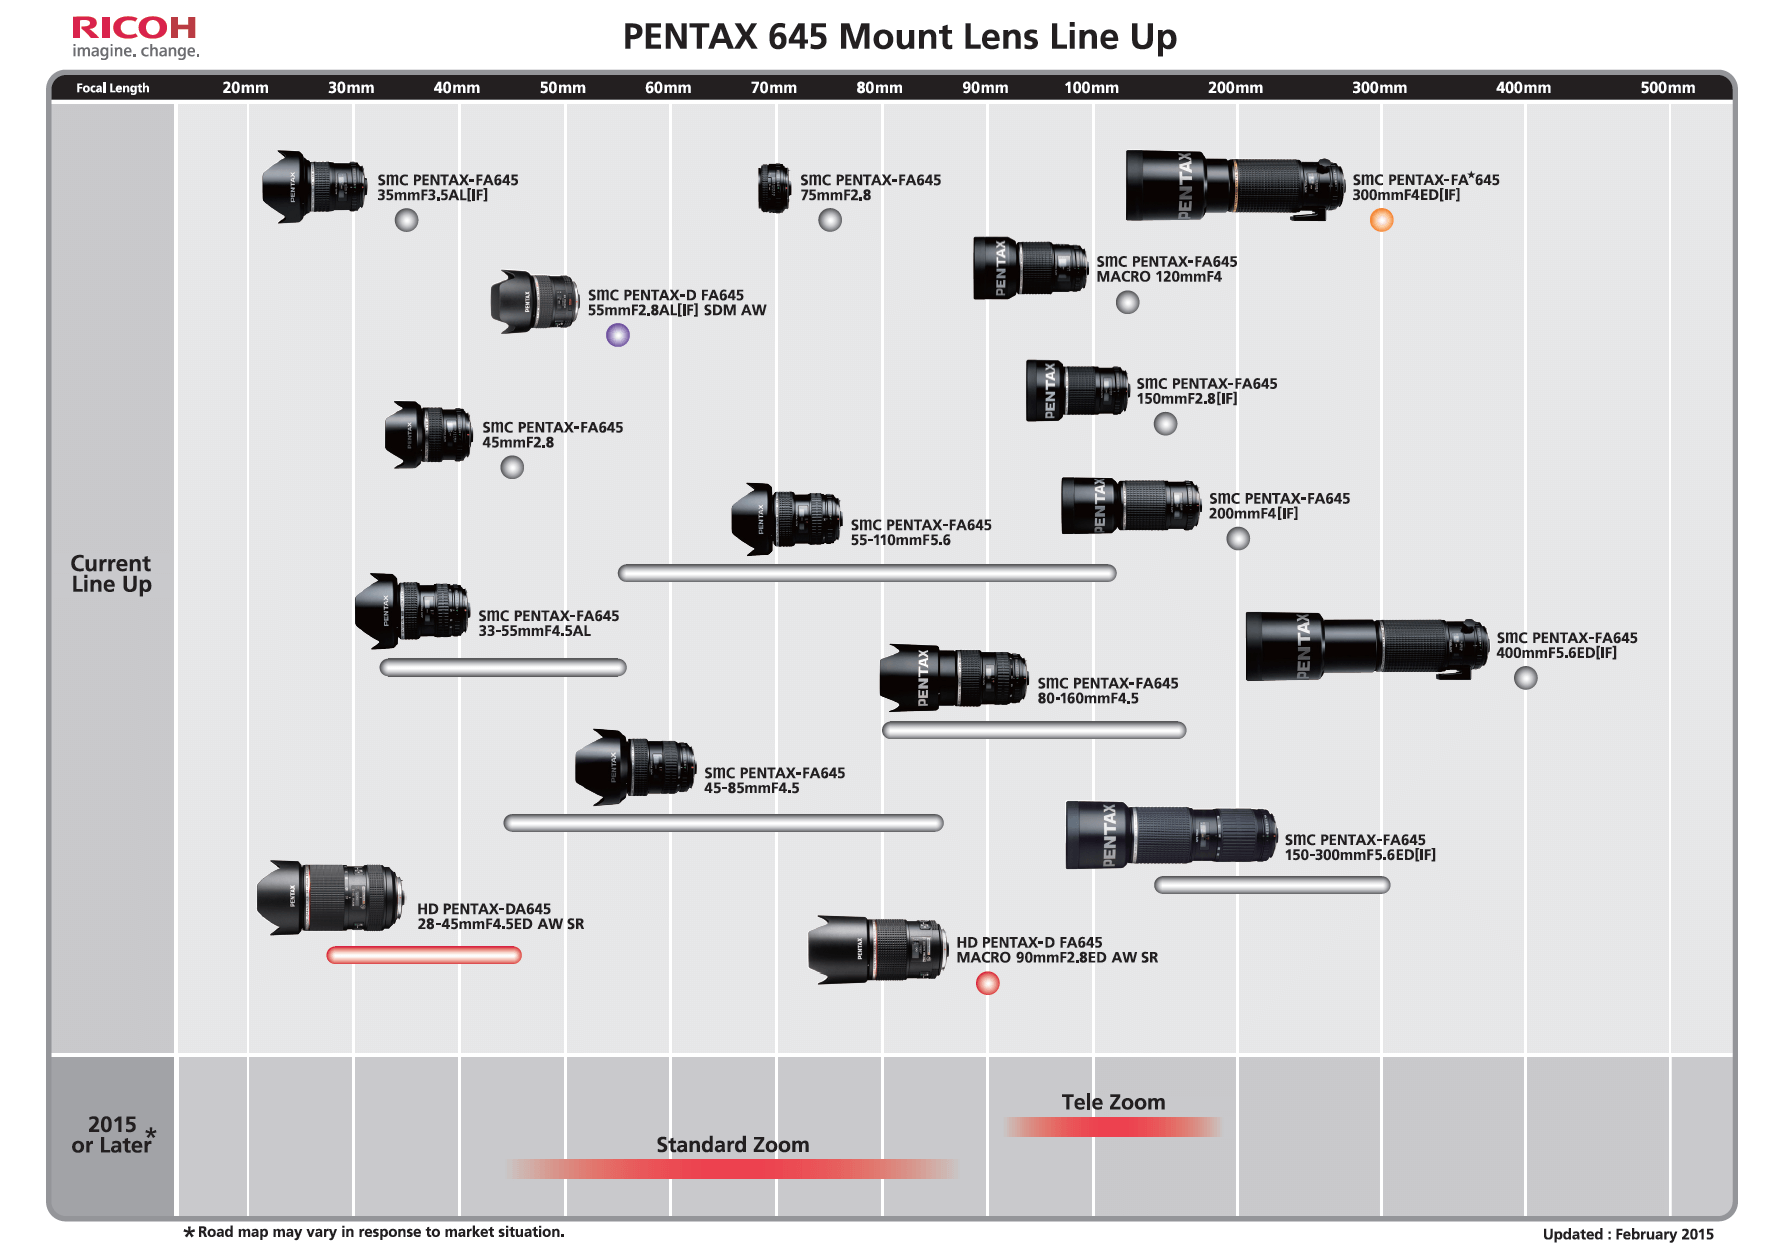 pentax-645-mount-lens-2015-roadmap Updated Pentax lens 2015 roadmap announced at CP+ 2015 News and Reviews